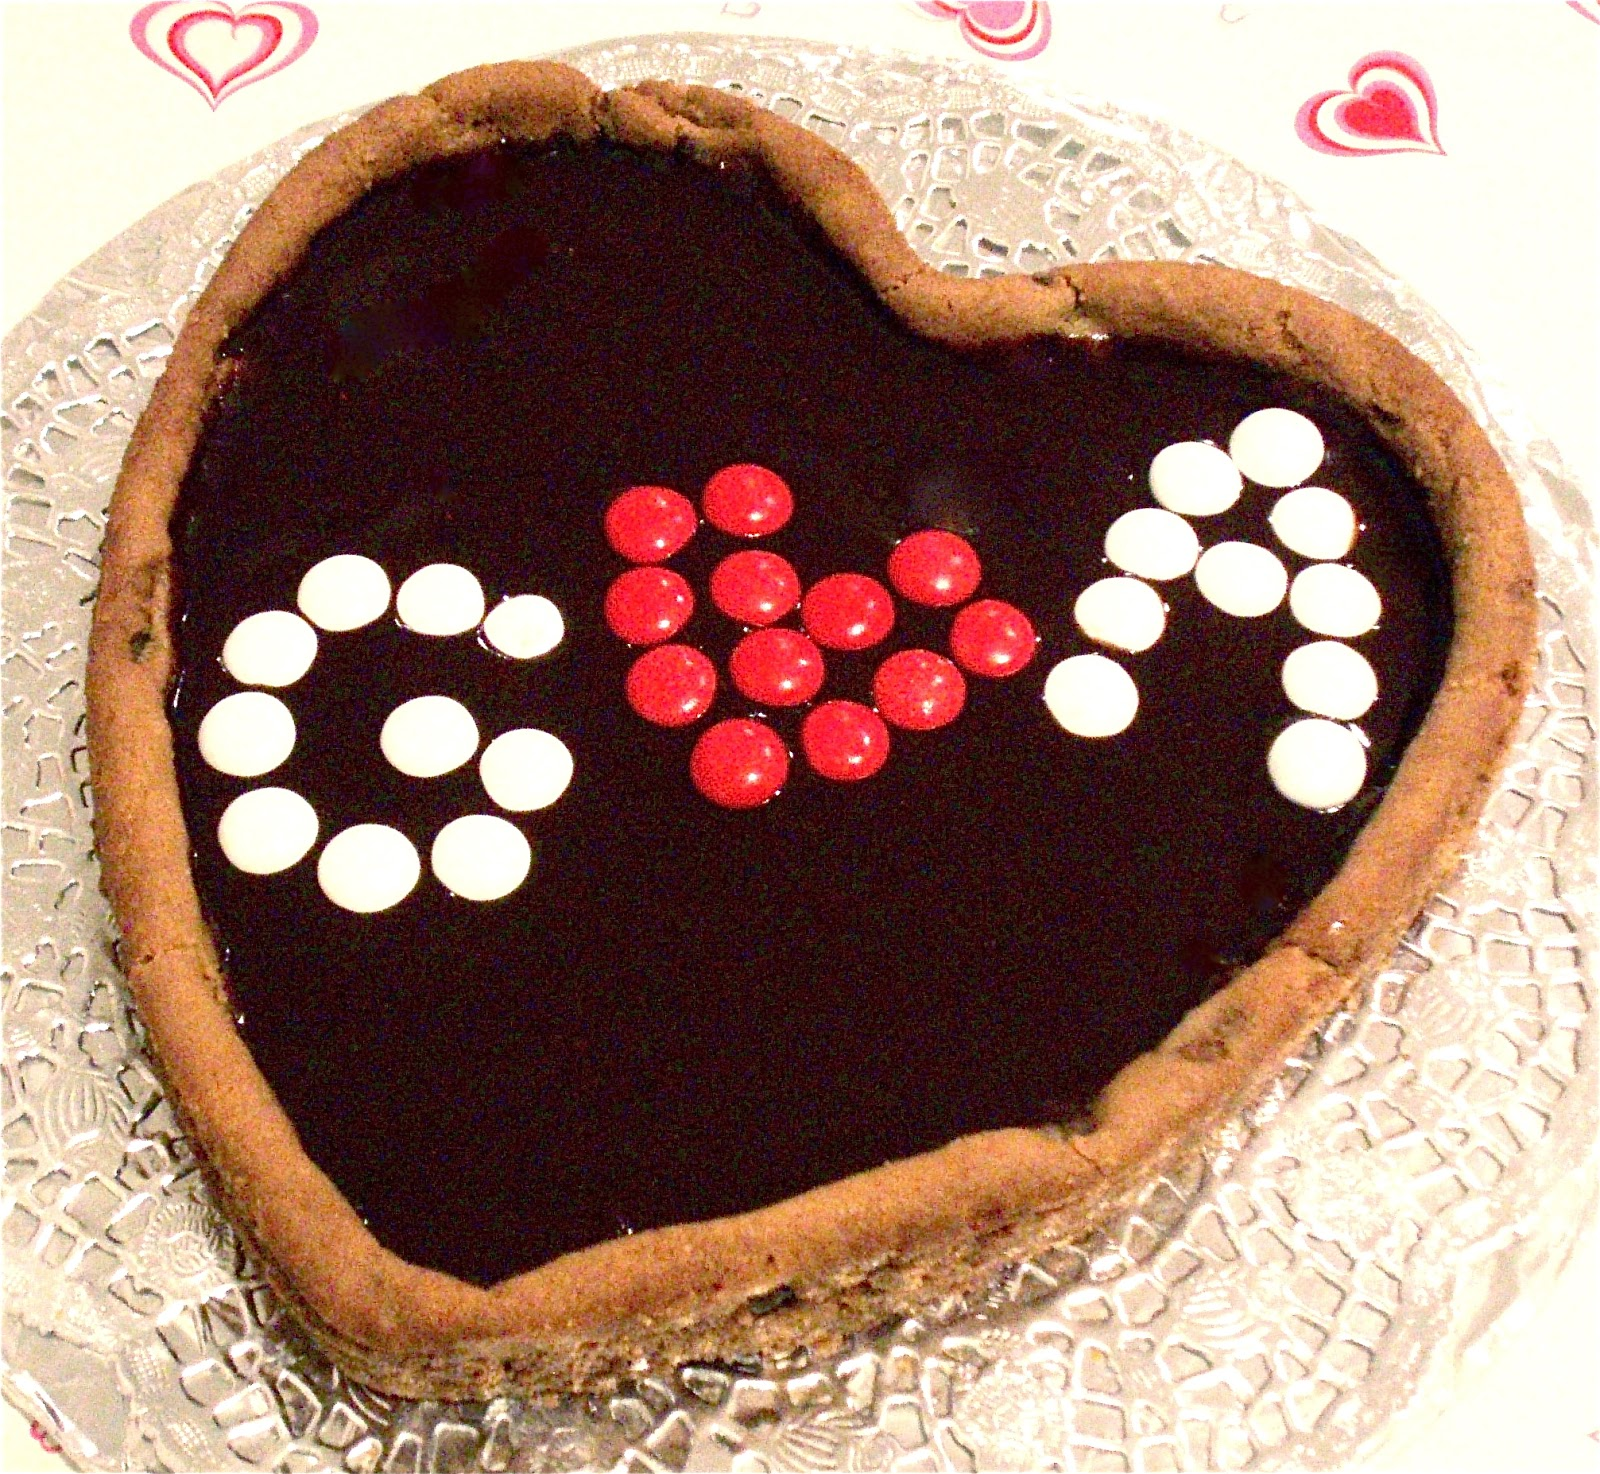 Giant Heart Shaped Cookie Cake Topped With Fudgy Chocolate